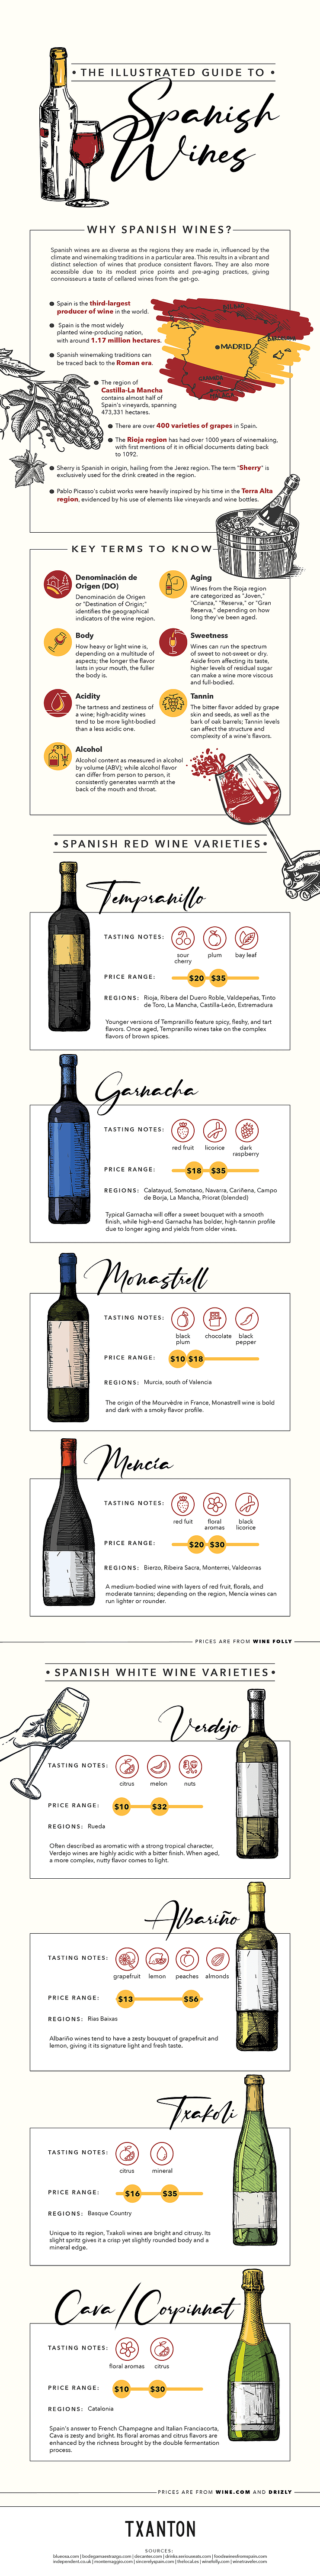 Illustrated Guide to Spanish Wines